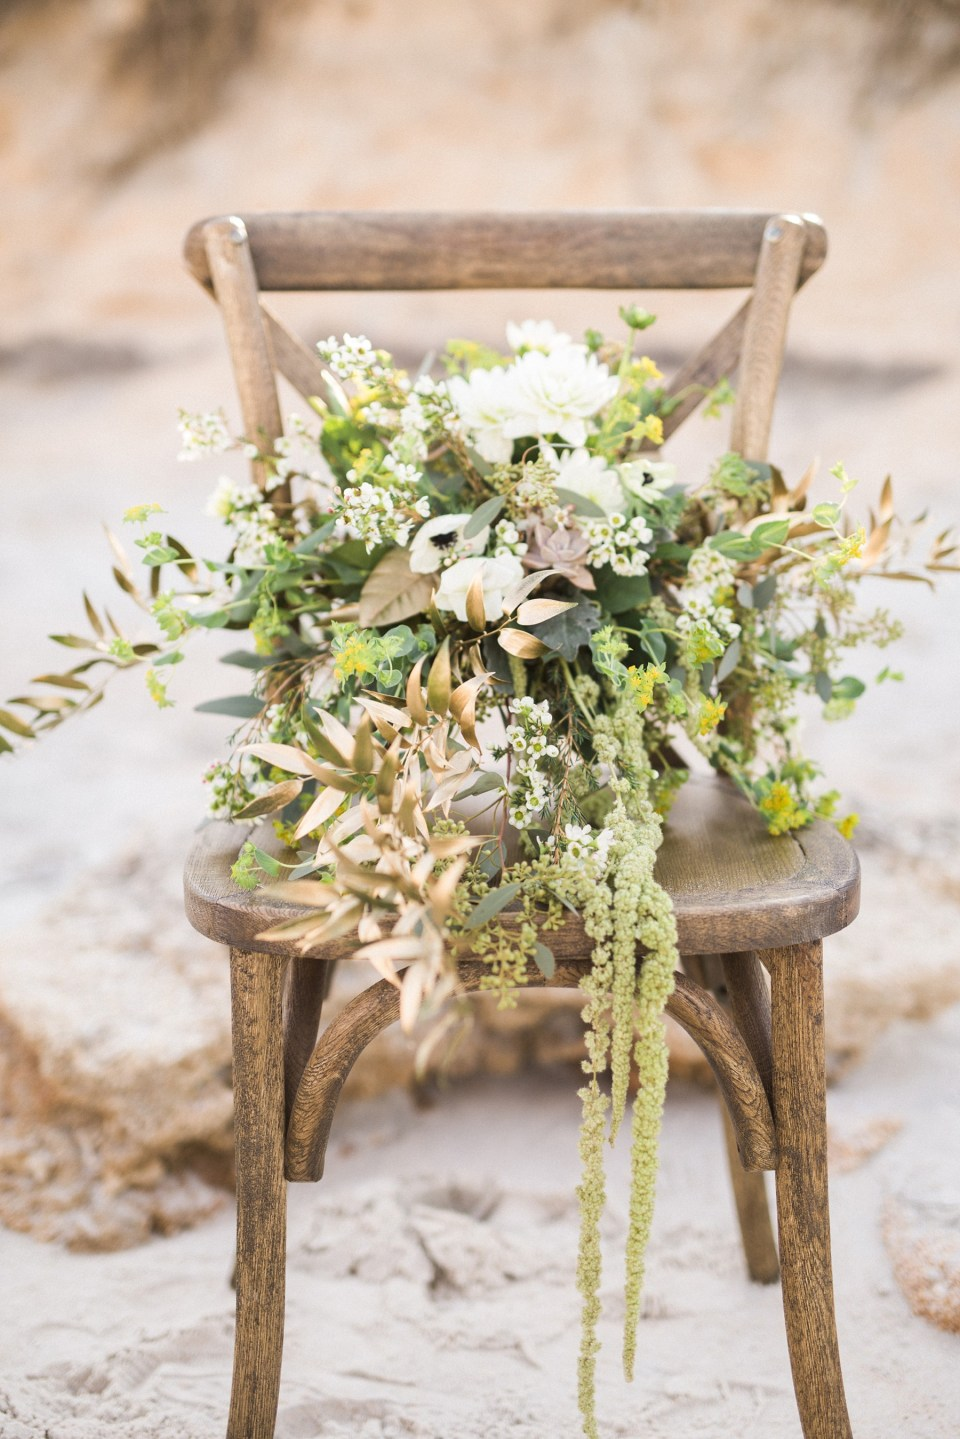 Greenery wedding bouquet with dahlias, succulents, gold accents | Mermaid Inspired Beside the Sea Wedding Shoot | www.bricibene.com